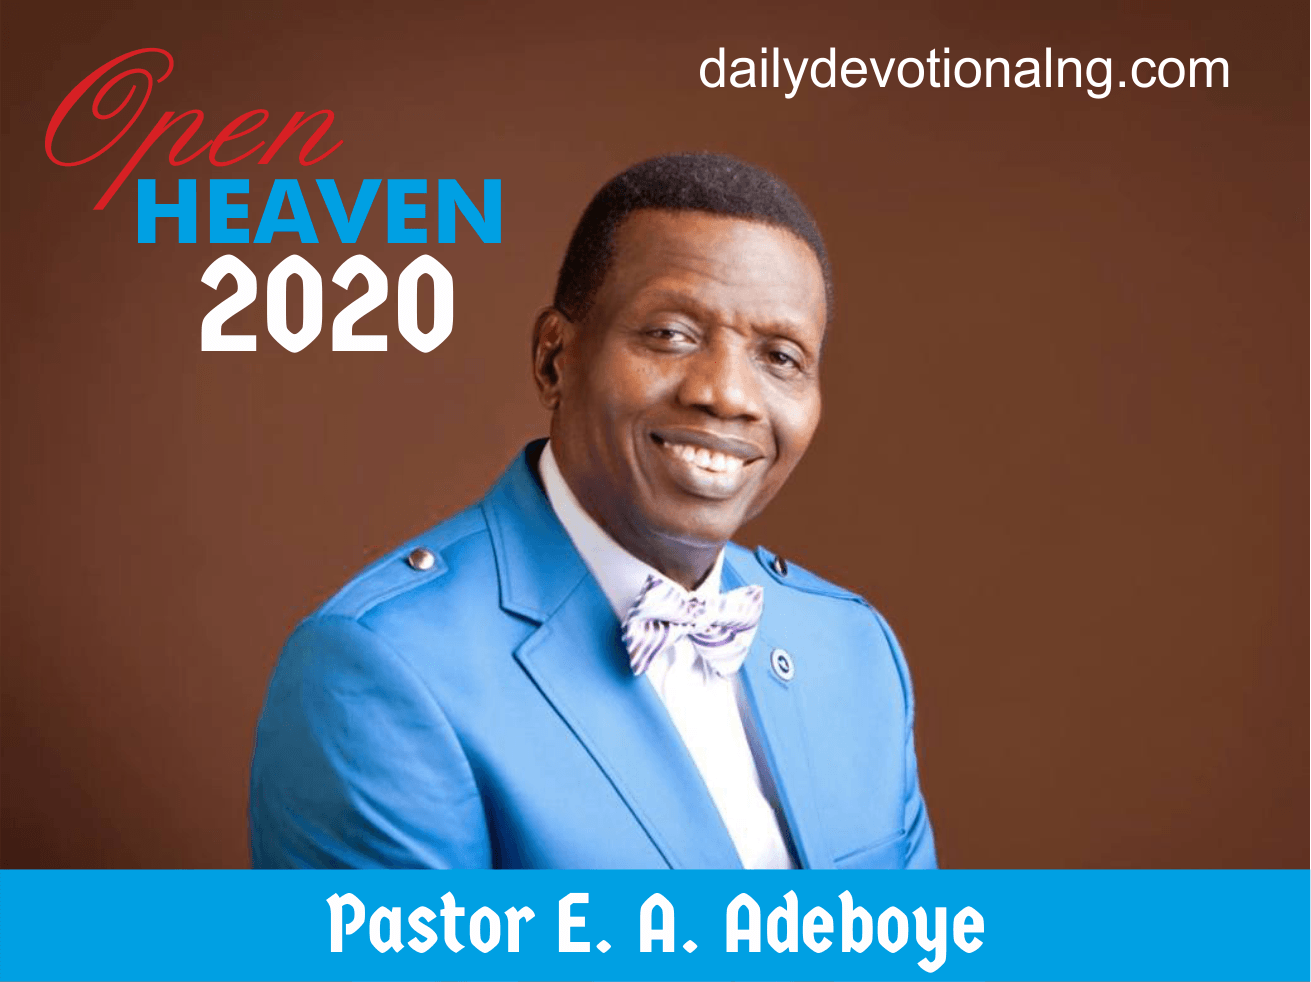 Open Heaven 25th November 2020, Open Heaven 25th November 2020 Devotional – Looking For Greener Pastures?, Latest Nigeria News, Daily Devotionals & Celebrity Gossips - Chidispalace